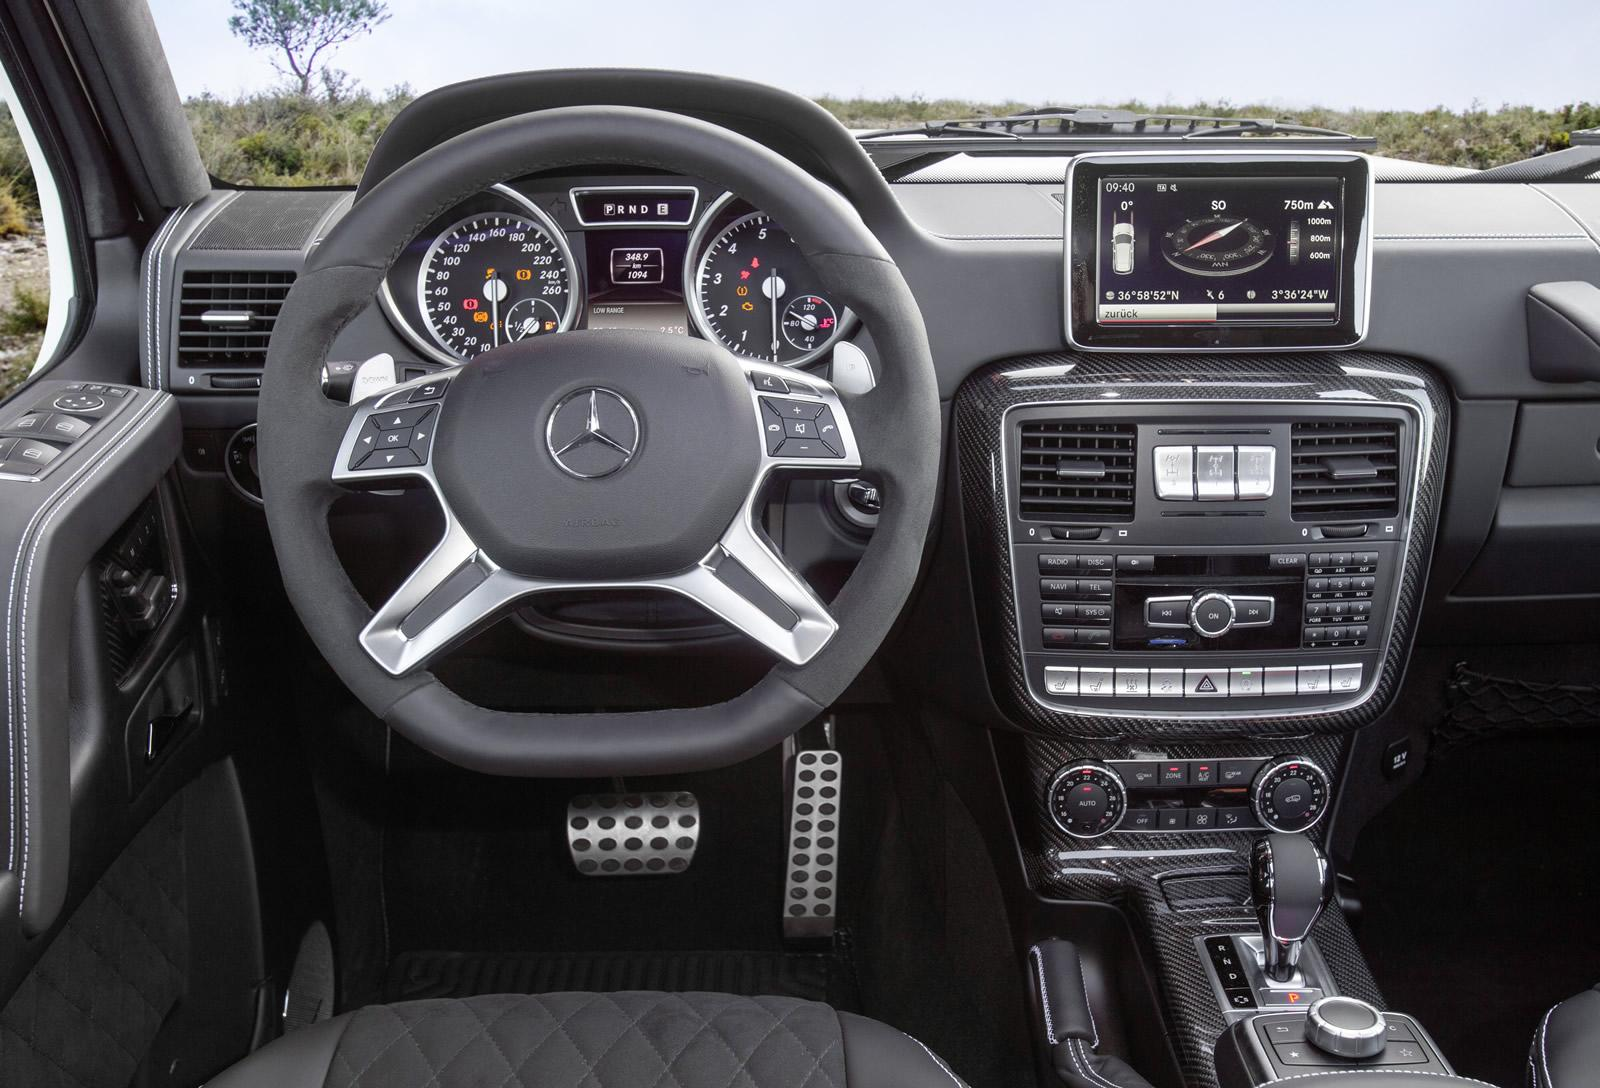 mercedes benz g500 4x4 price announced its more than a g63 amg autoevolution - Mercedes G Interior 2015